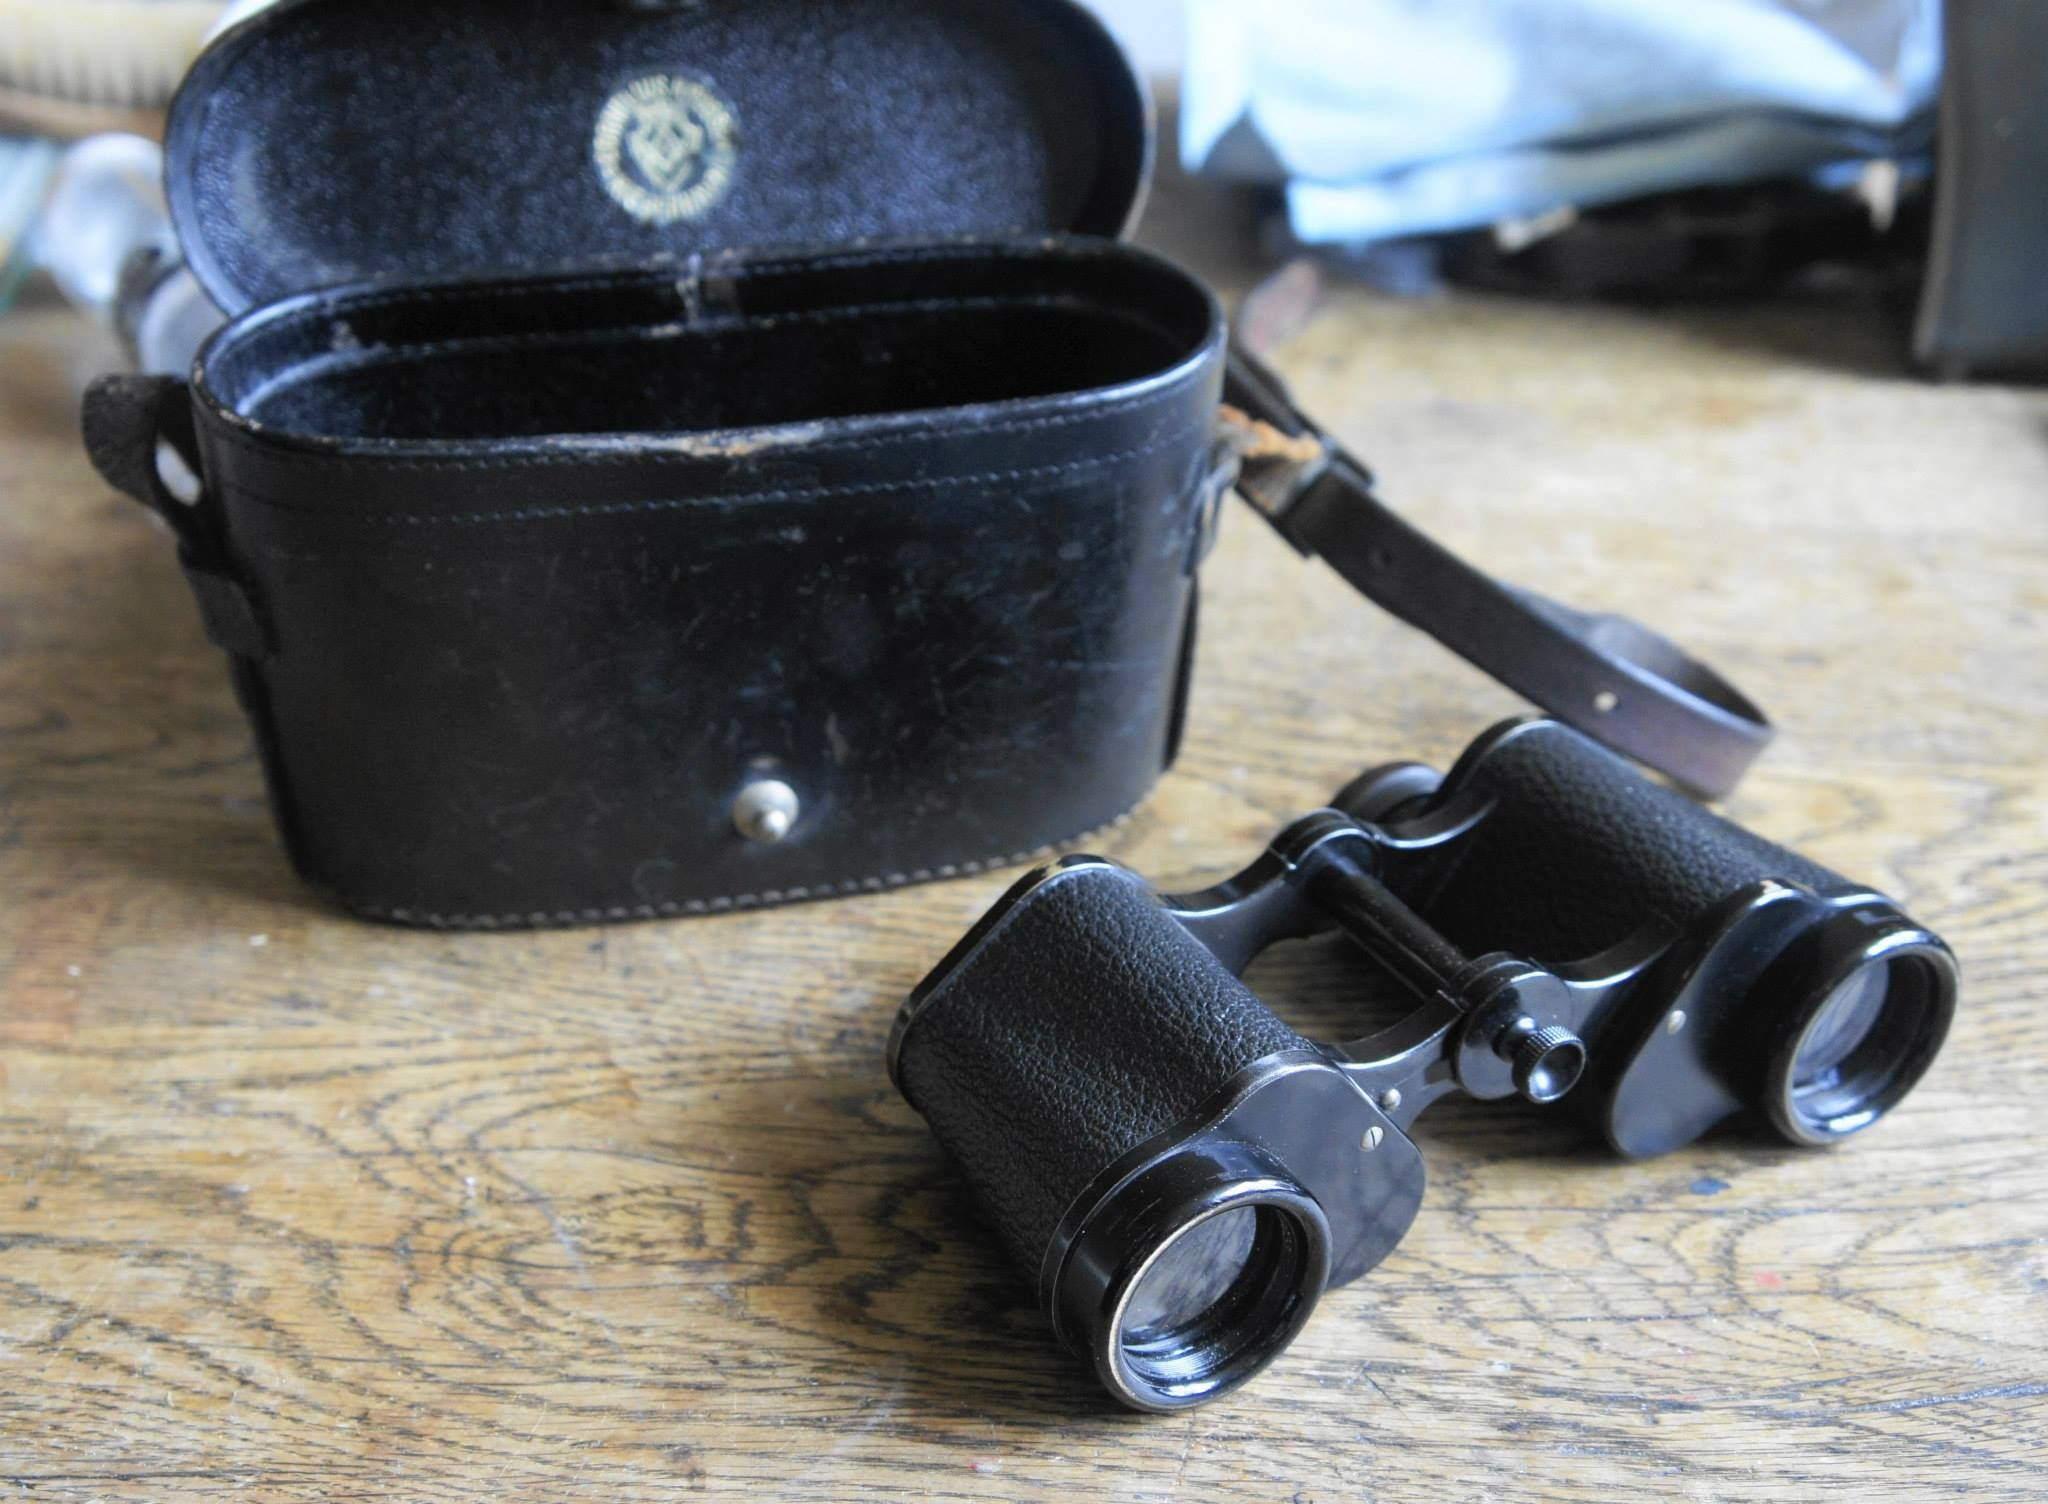 """Zeiss Telefort 12X30, Mint condision. With original bag. Production number 245656, year 1910. Originaly sold via the danish firm """"Cornelius Knudsen Kjøbenhavn"""" Even 105 years old, this Gem display as new. The Tele Fort was produced in four different versions until 1914. There are various informations about when they were build, some lists say from 1907 to 1920 so this item are early. Others say production stopped 1914, sound reasonable. This are a civilian binocular proven by the small knot…"""